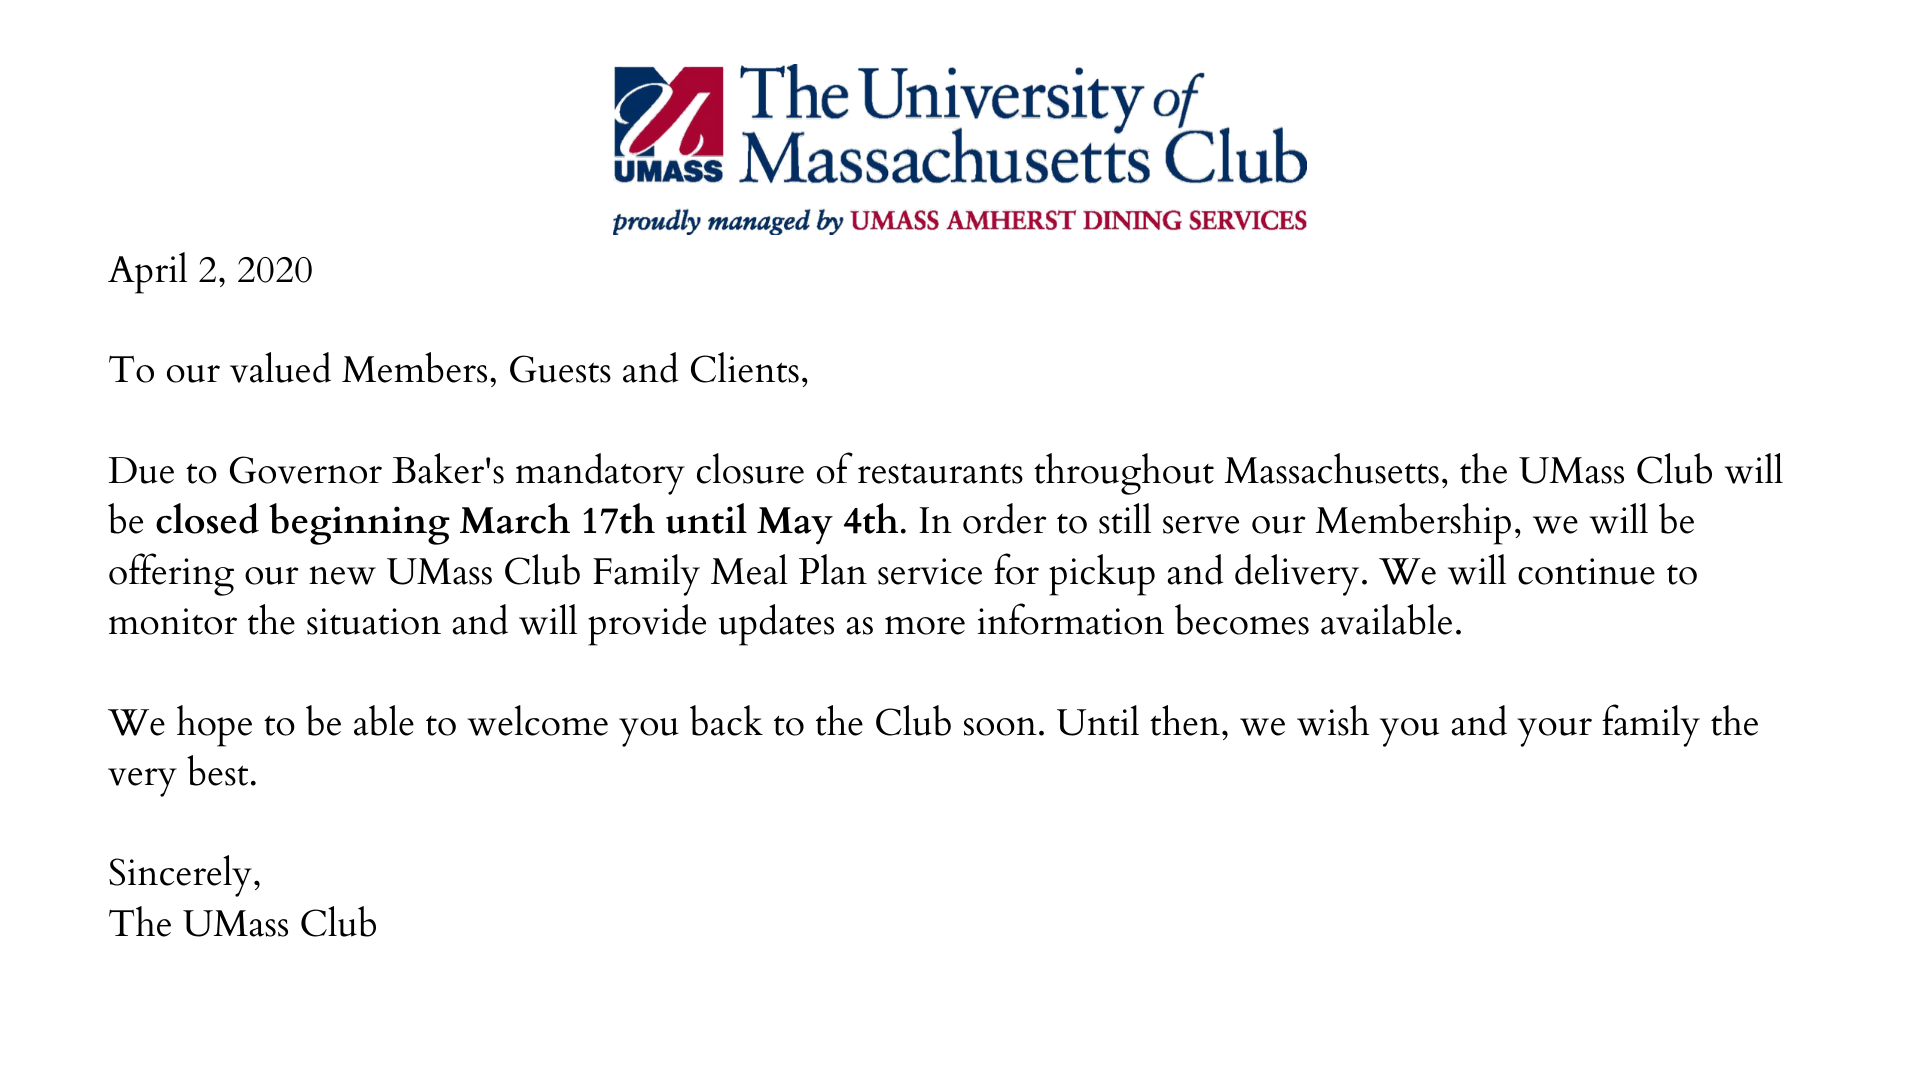 Club Closed until May 4th